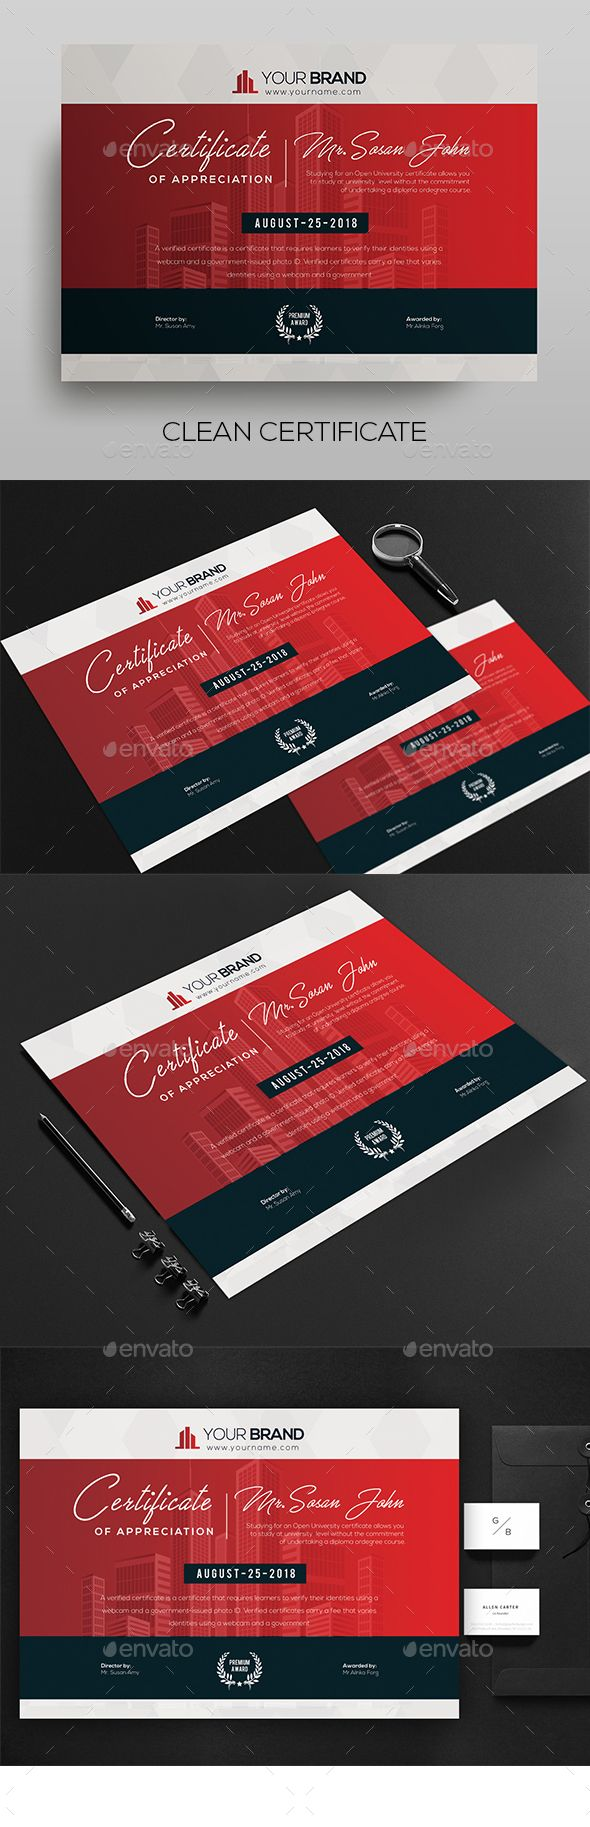 Certificate Certificate Template  Fully Clean Certificate 8.27×11.69 Size With Bleeds Quick and easy to customize templates Any Size Changes Fully Group Layer Free Fonts Use Fully Vector